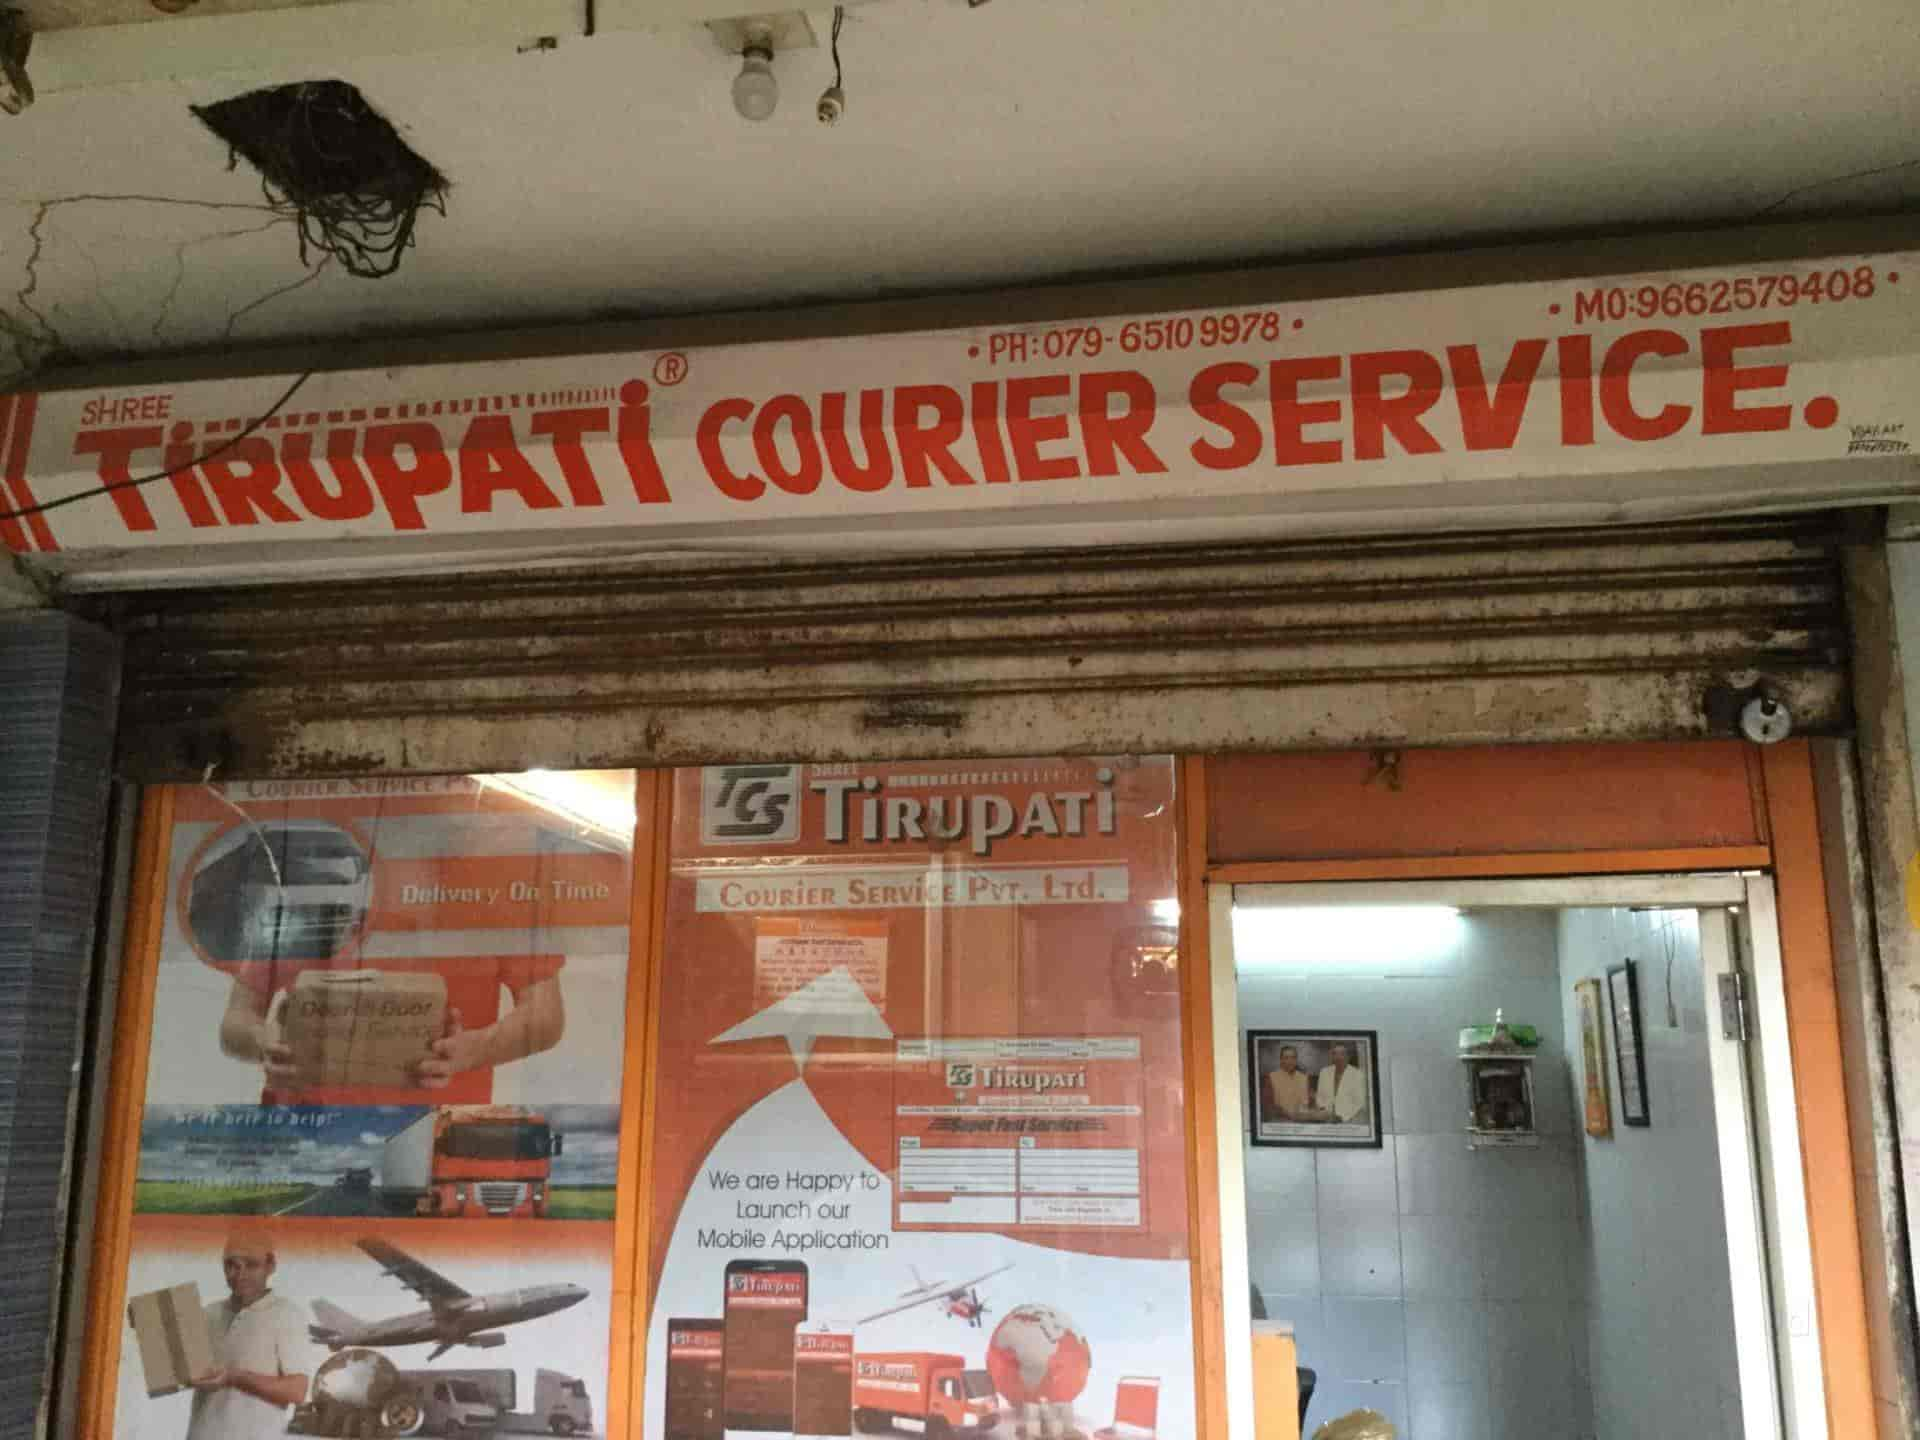 Shree Tirupati Courier Services Bapunagar Courier Services In Ahmedabad Justdial